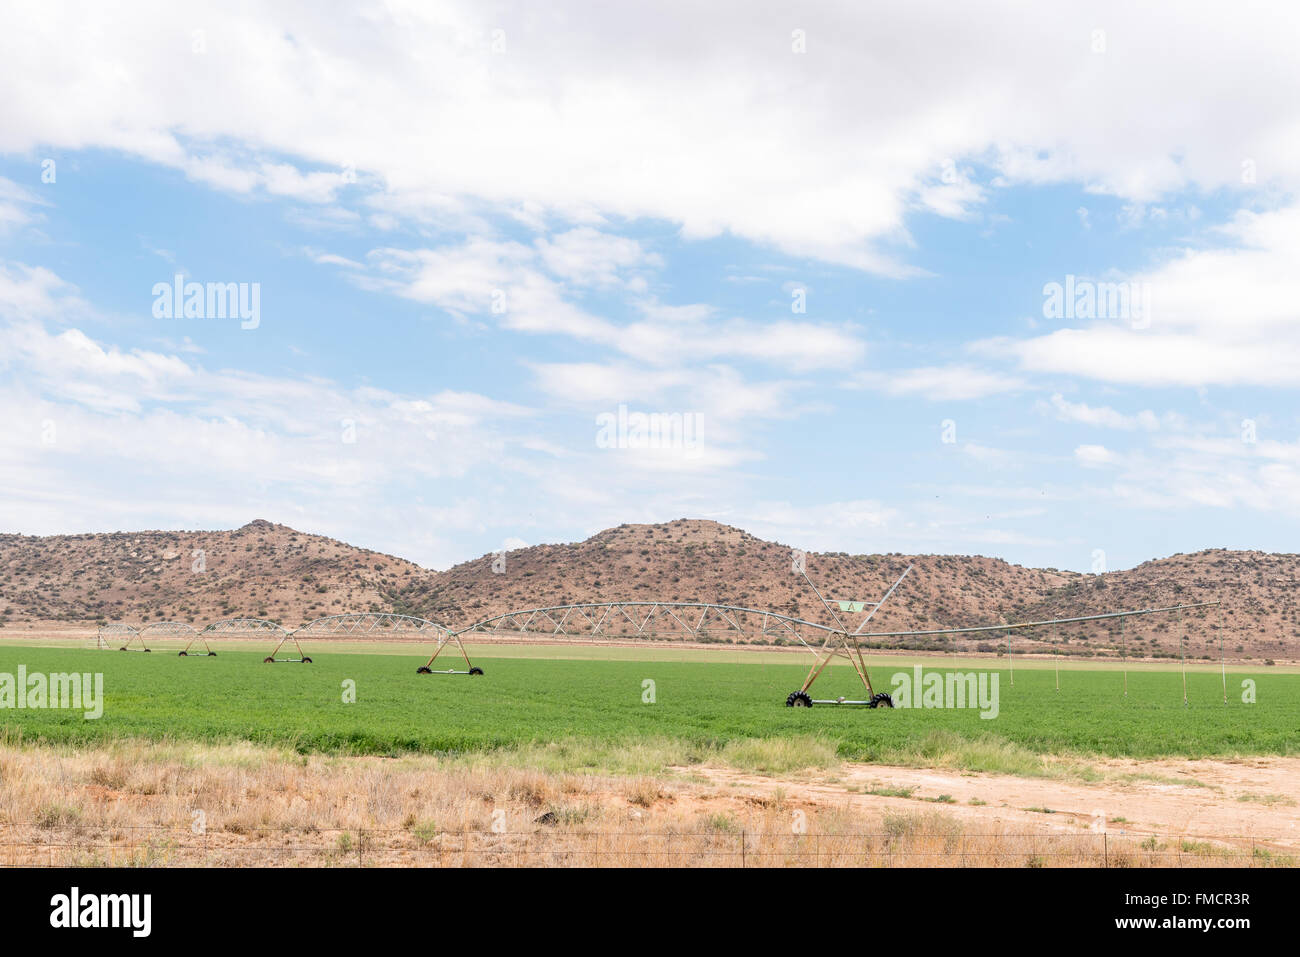 A center pivot irrigation system using rotator style pivot applicator sprinklers near Venterstad in the Eastern - Stock Image